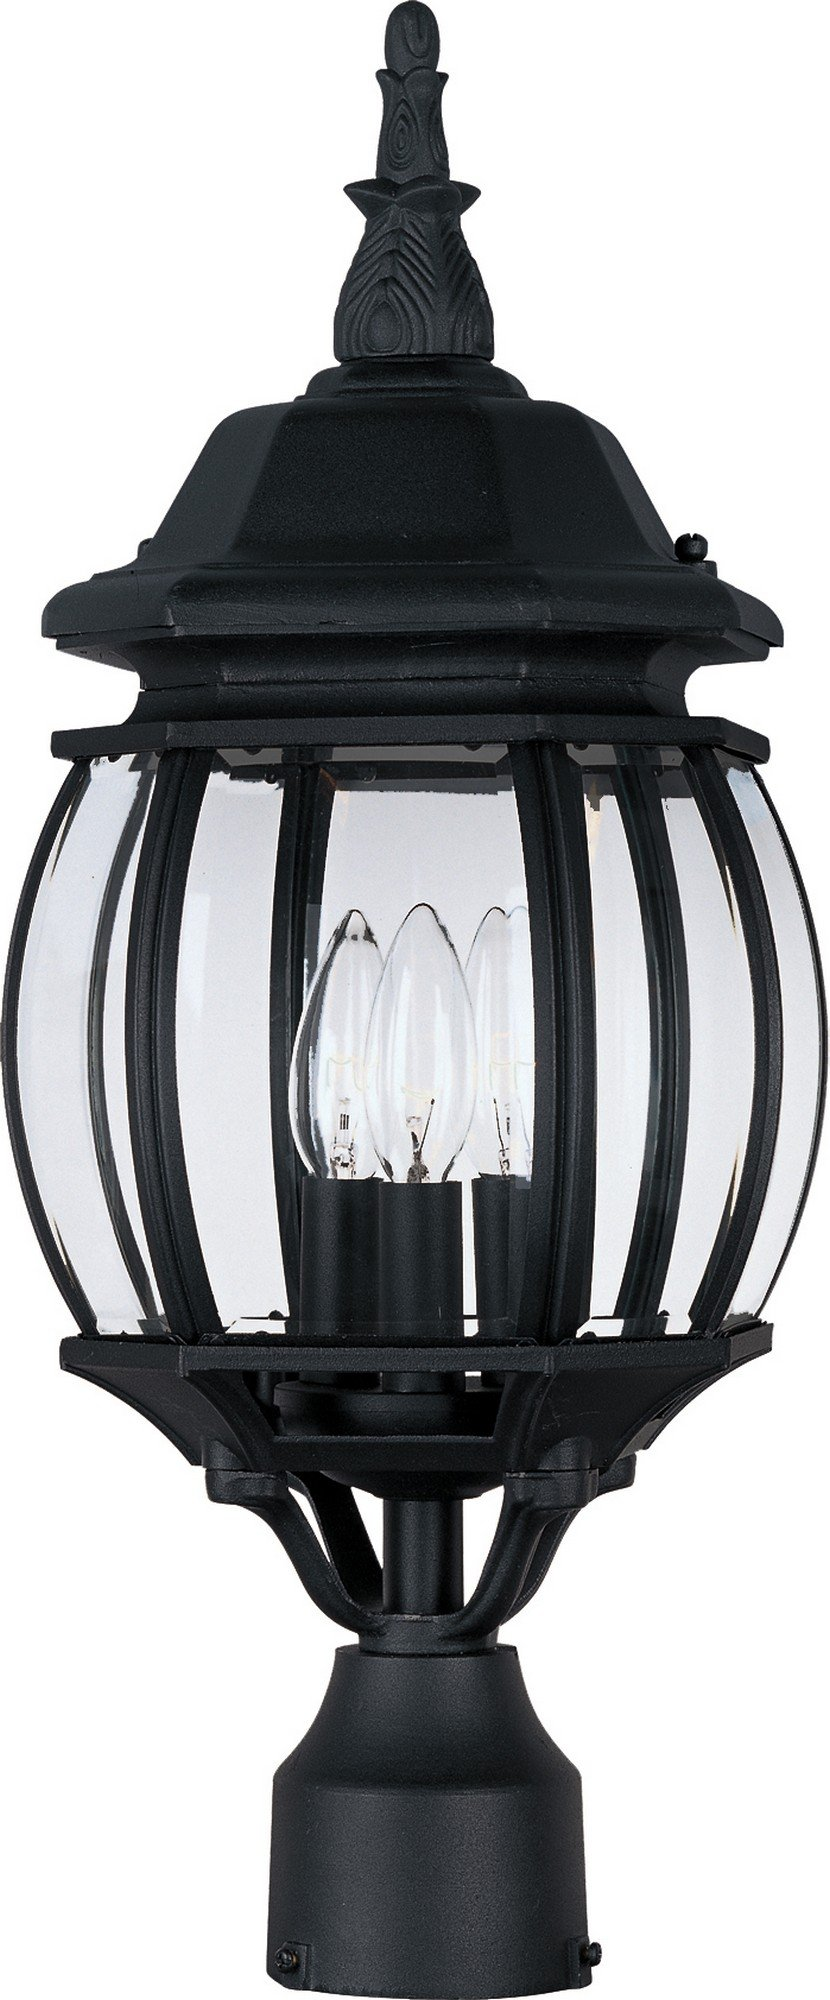 Maxim 1035BK Crown Hill 3-Light Outdoor Pole/Post Lantern, Black Finish, Clear Glass, CA Incandescent Incandescent Bulb , 60W Max., Dry Safety Rating, Standard Dimmable, Fabric Shade Material, Rated Lumens